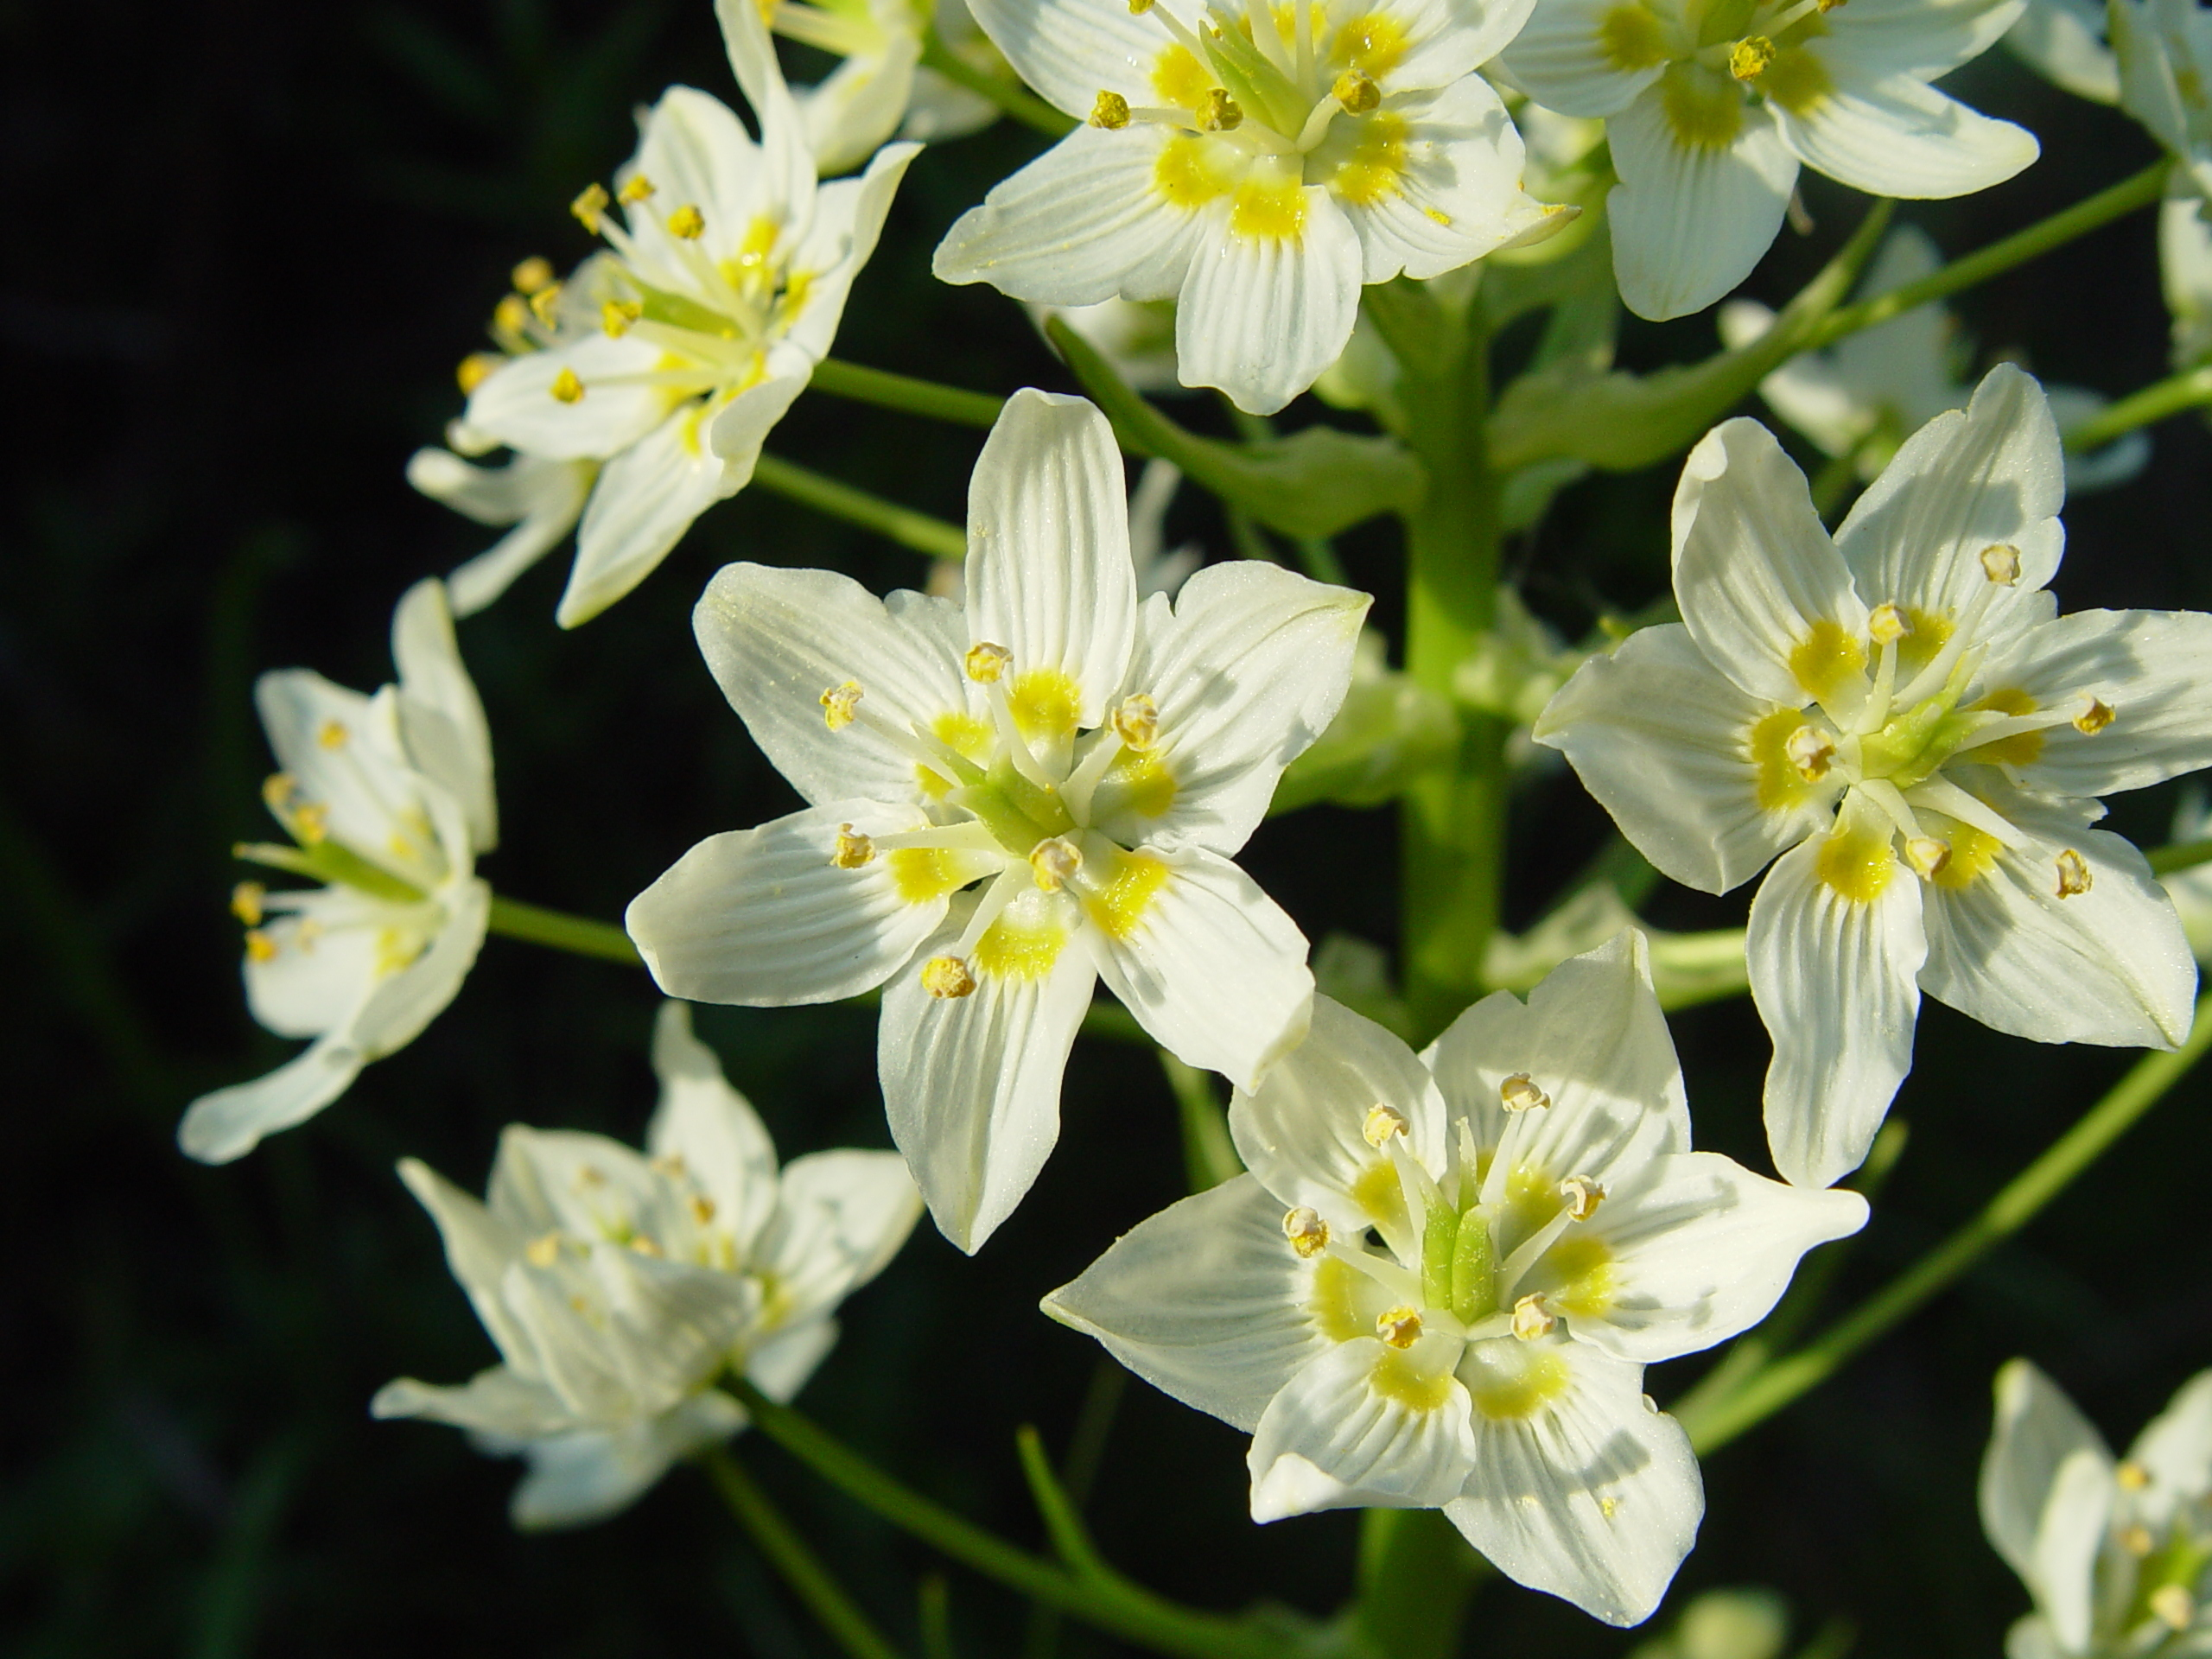 Image of common star lily